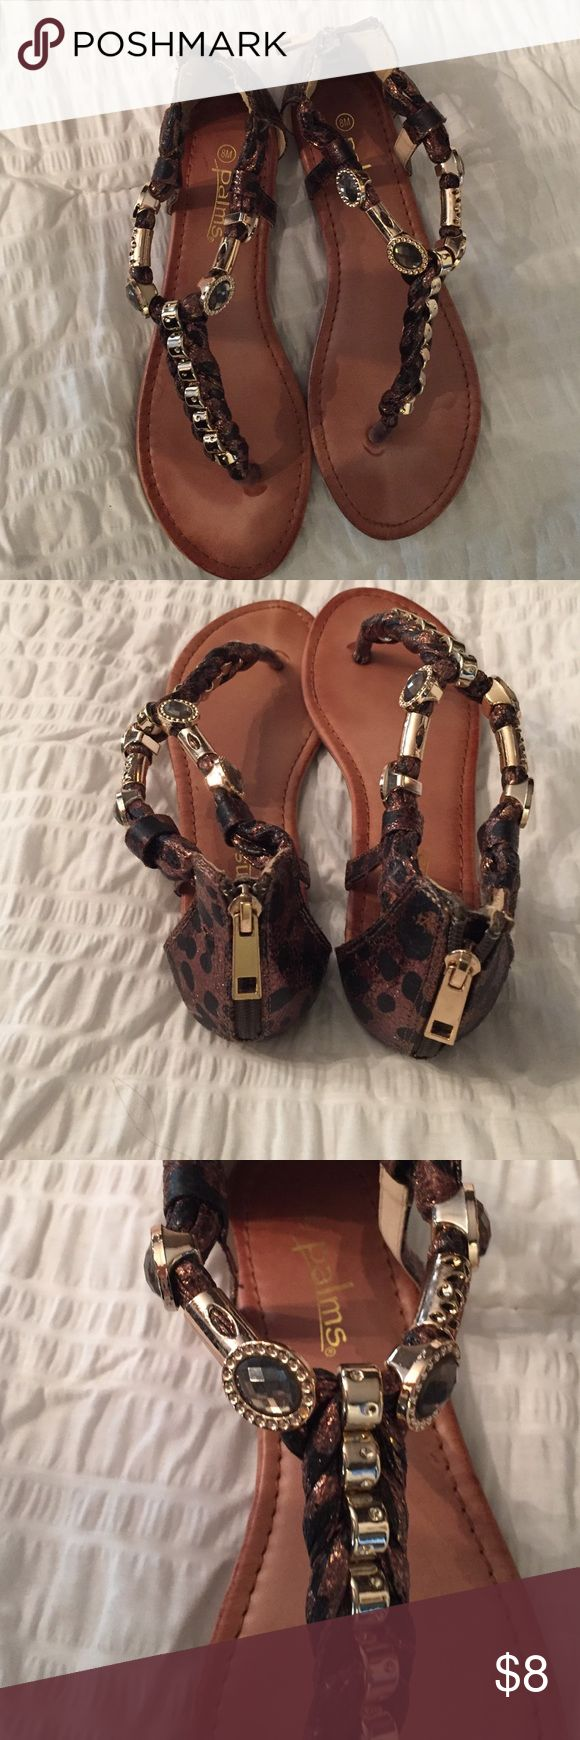 Palms leopard print sandals Bronze leopard print sandals with gold time hardware. Dress any look. Worn once. Shoes Sandals